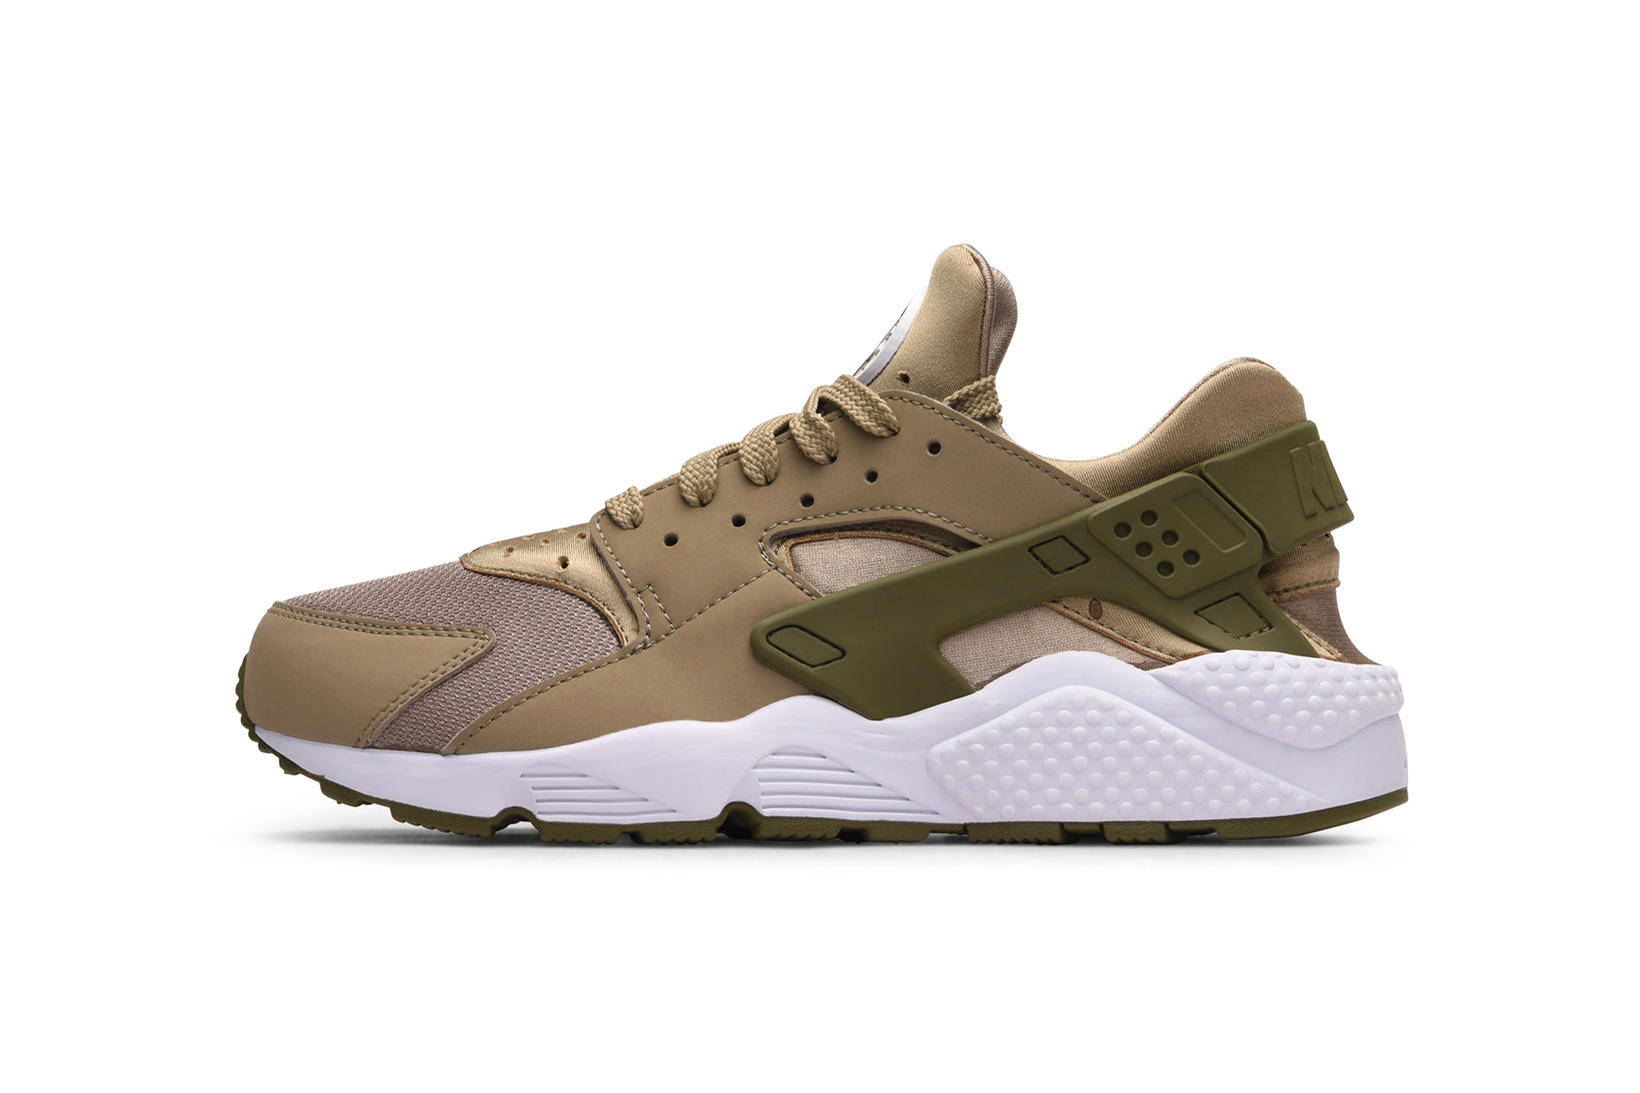 Nike Air Huarache Phantom Gum Yellow Light Bone Khaki Medium Olive - 3769458